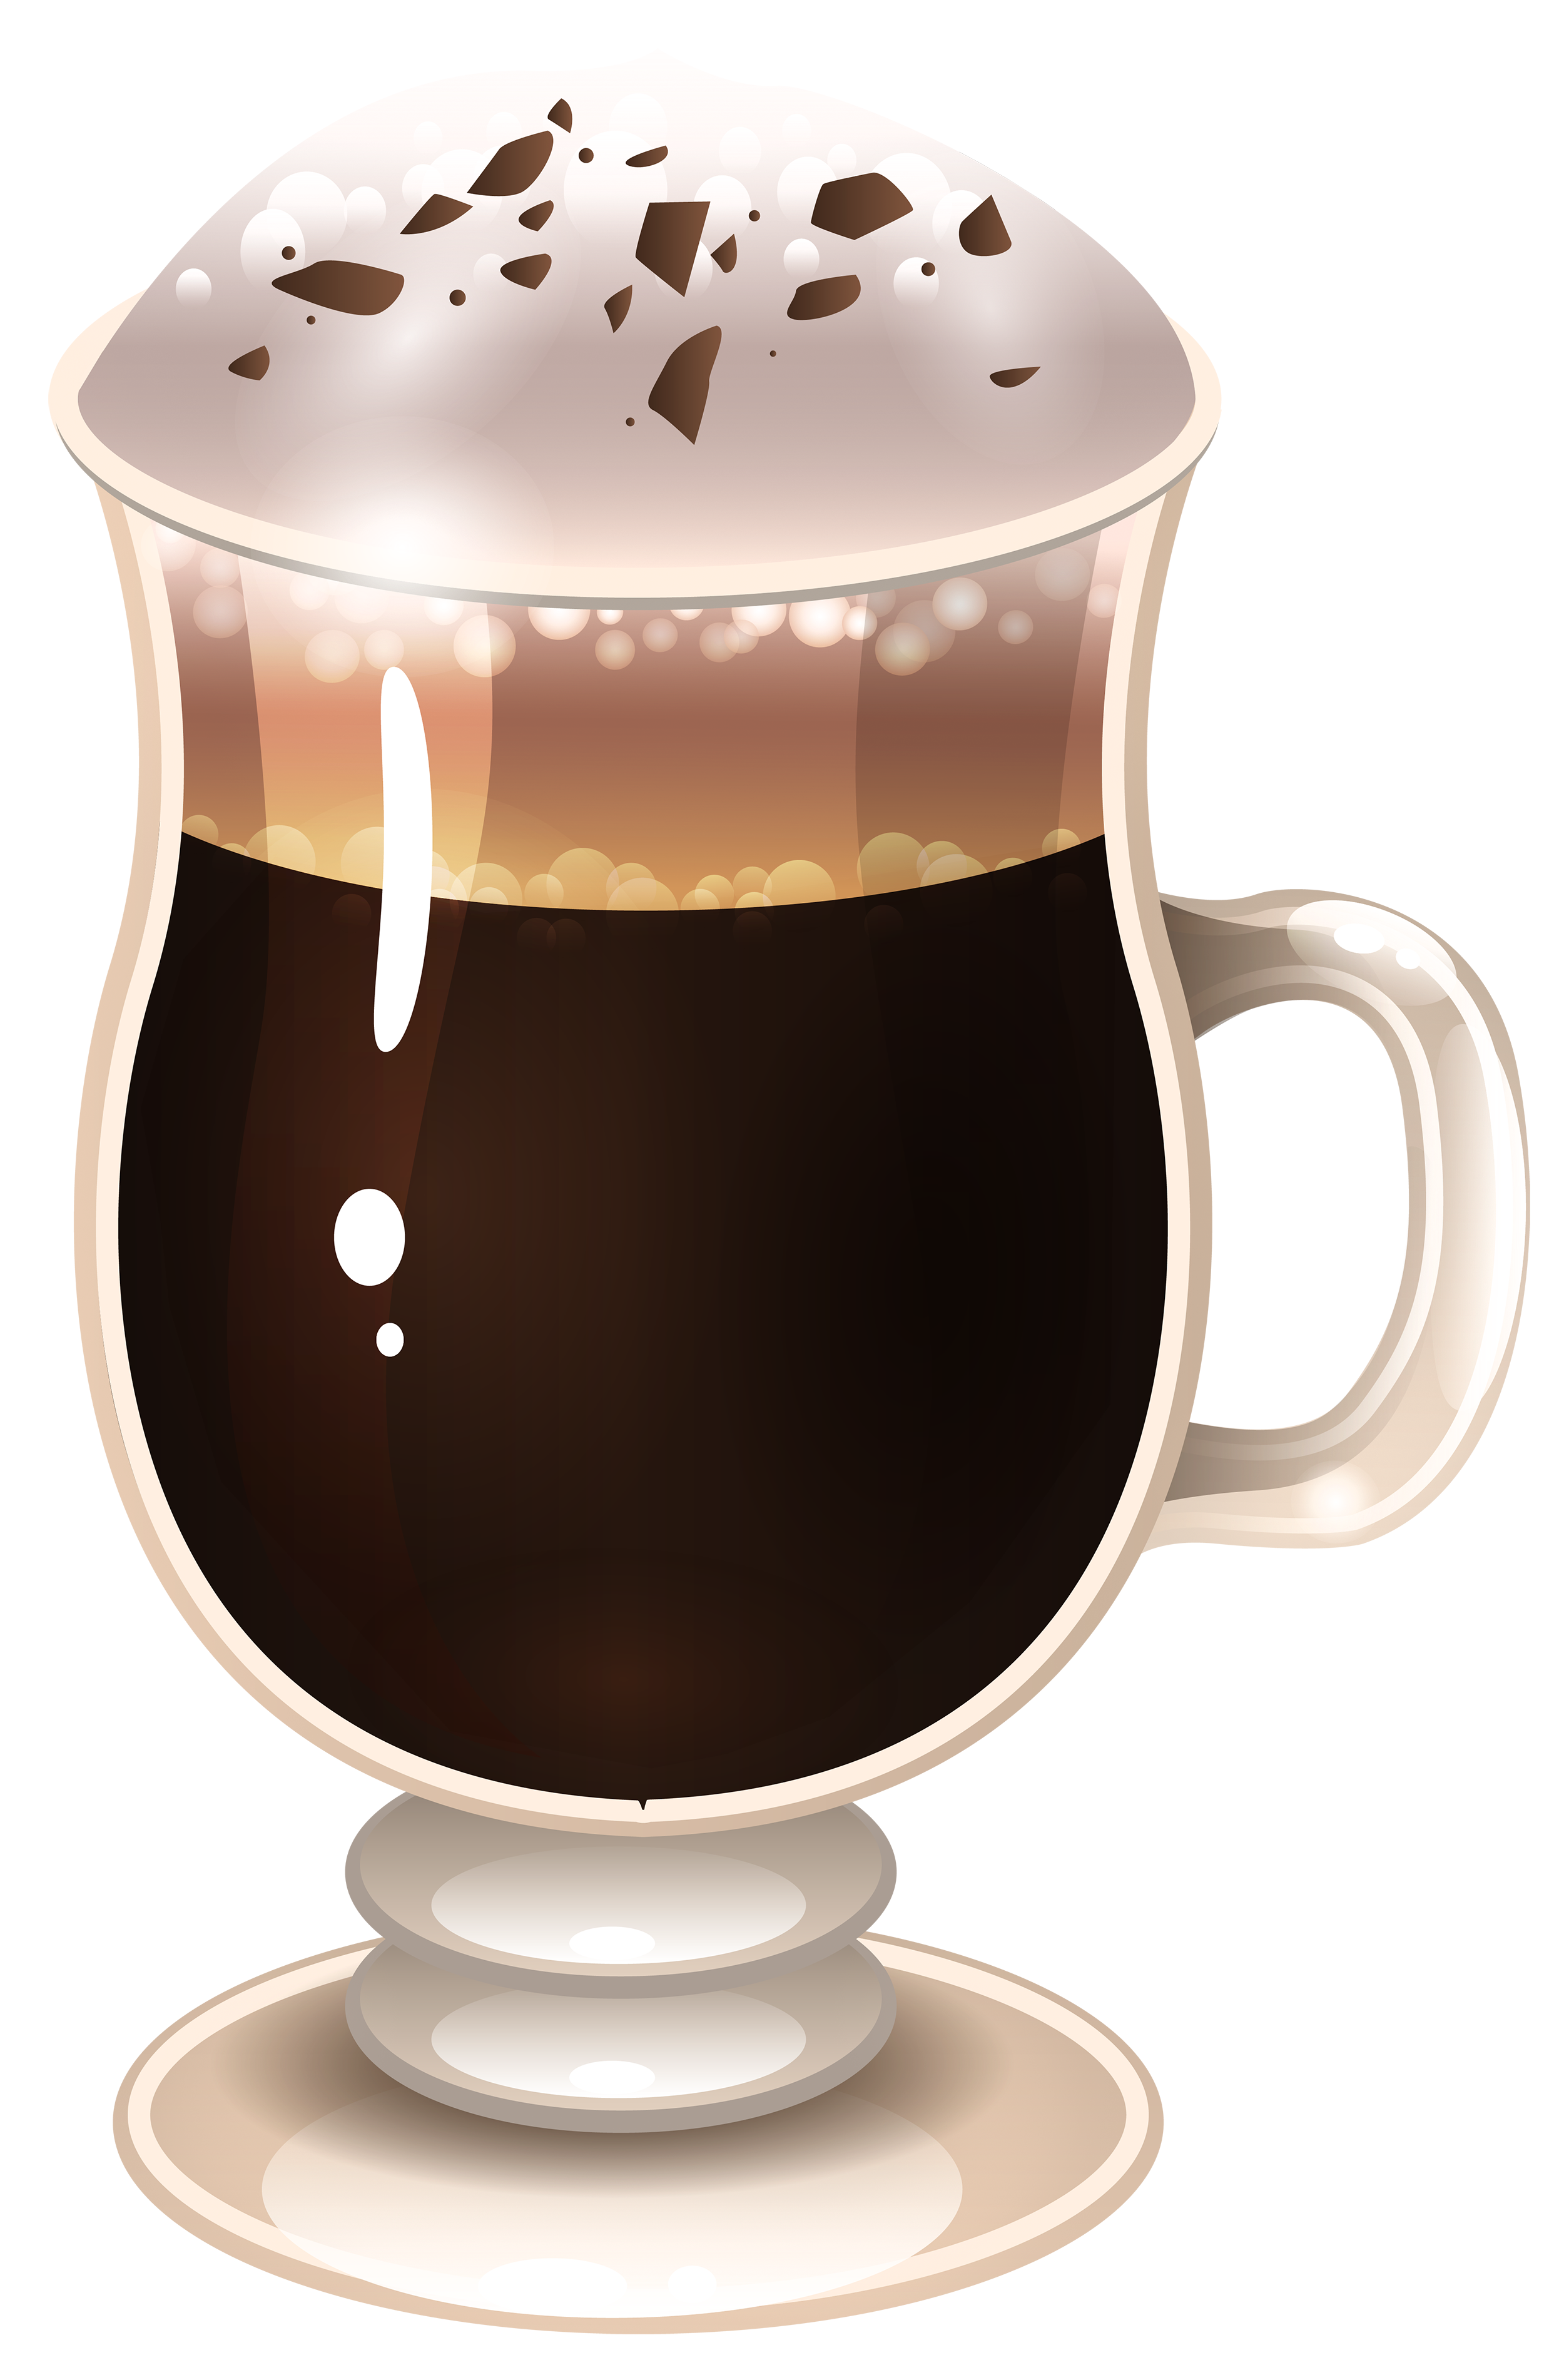 Latte clipart. Coffee png image gallery